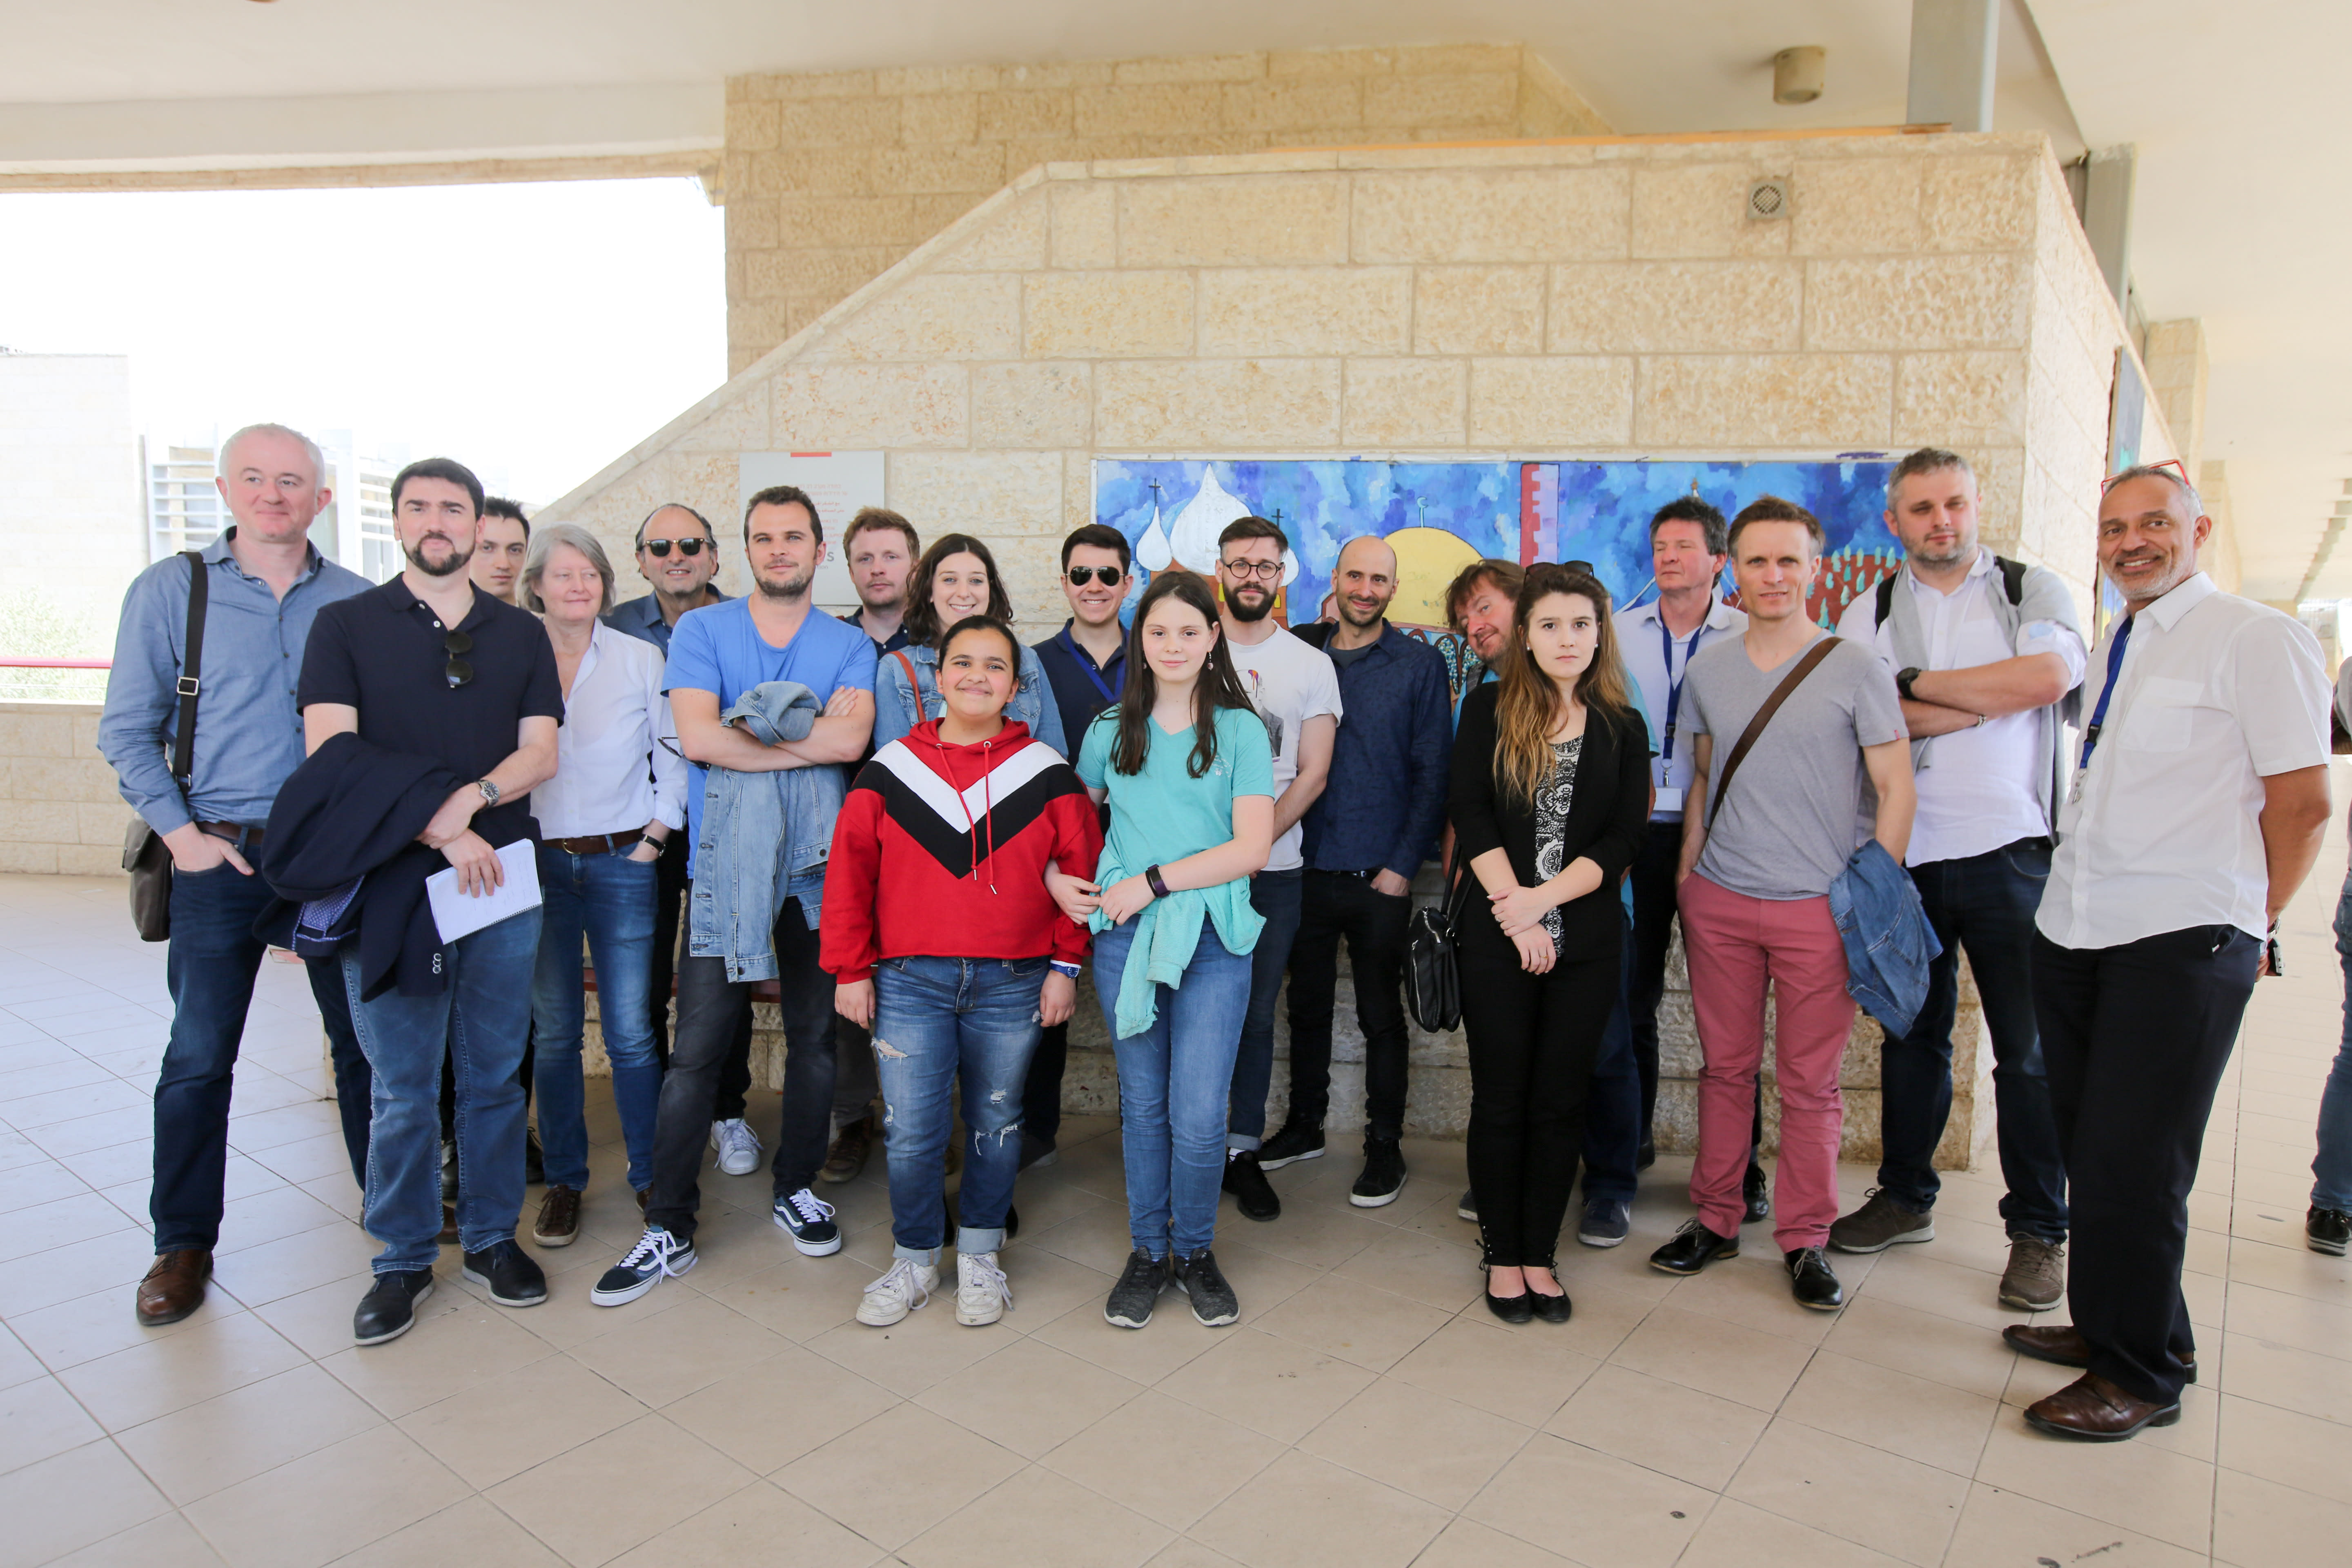 Foreign journalists pose in front of the Jerusalem Hand in Hand School during their visit to Israel